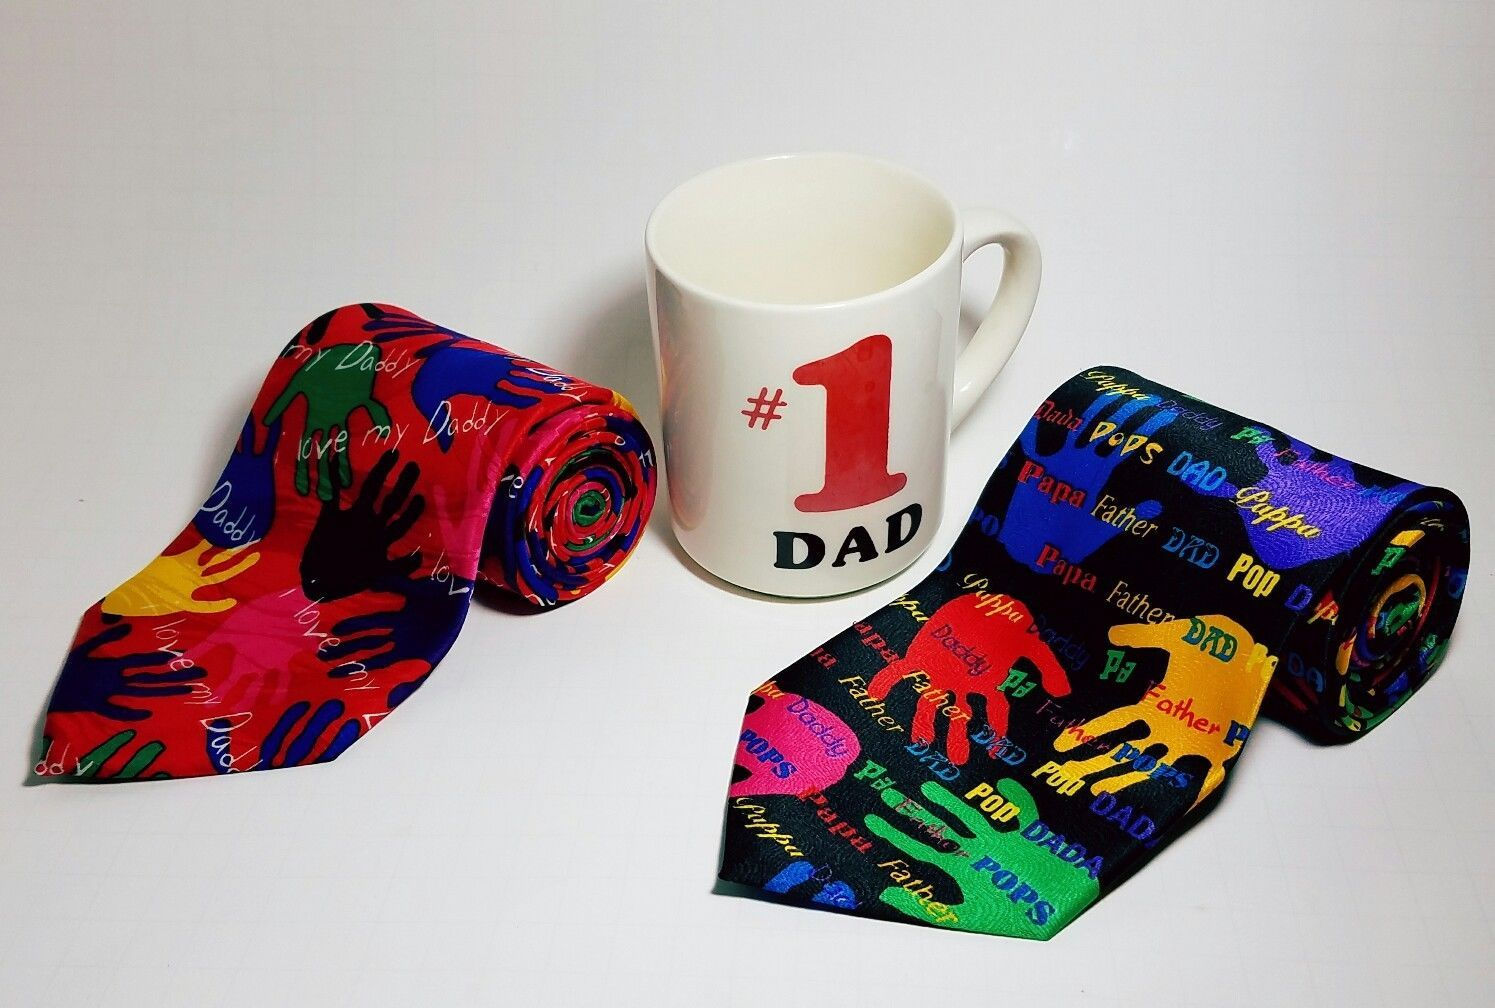 Father's Day Gift Combo - 1 #1 Dad Coffee Mug plus 2 Silk Ties. Perfect gift dad